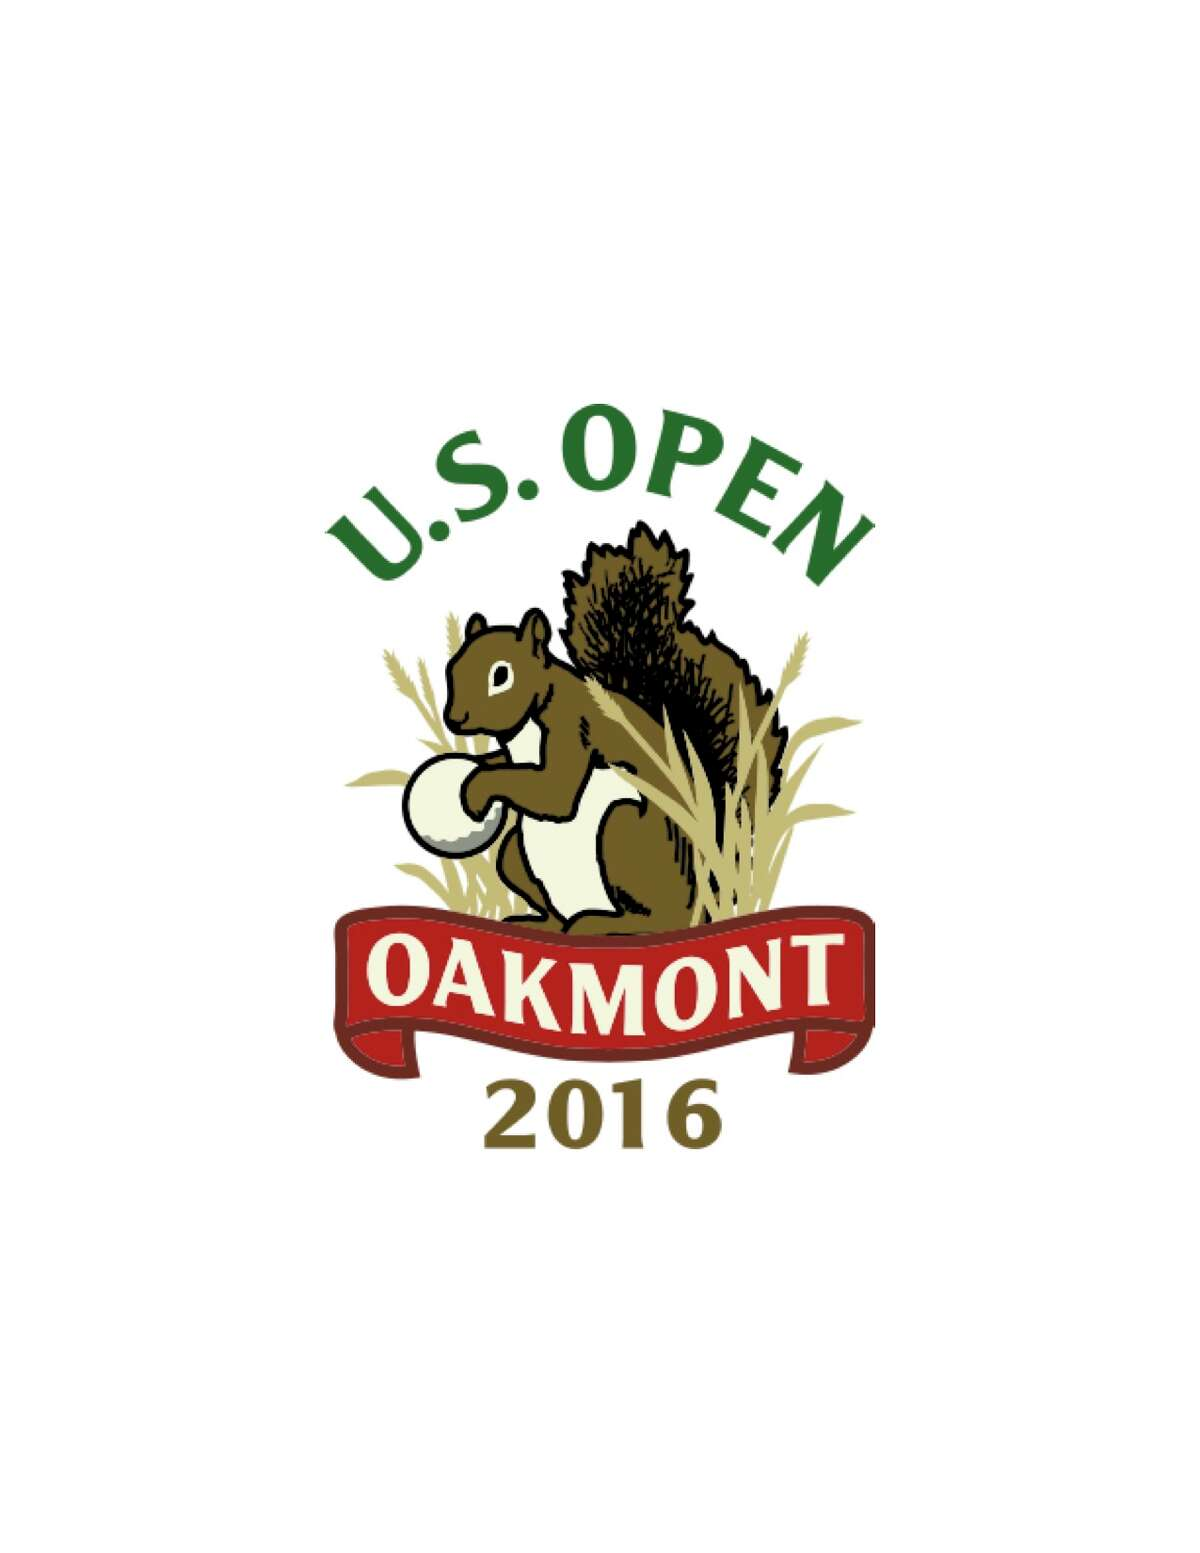 2. My first job was working as a caddie at Oakmont Country Club. I worked six days a week and didn't begin golfing until later in life.